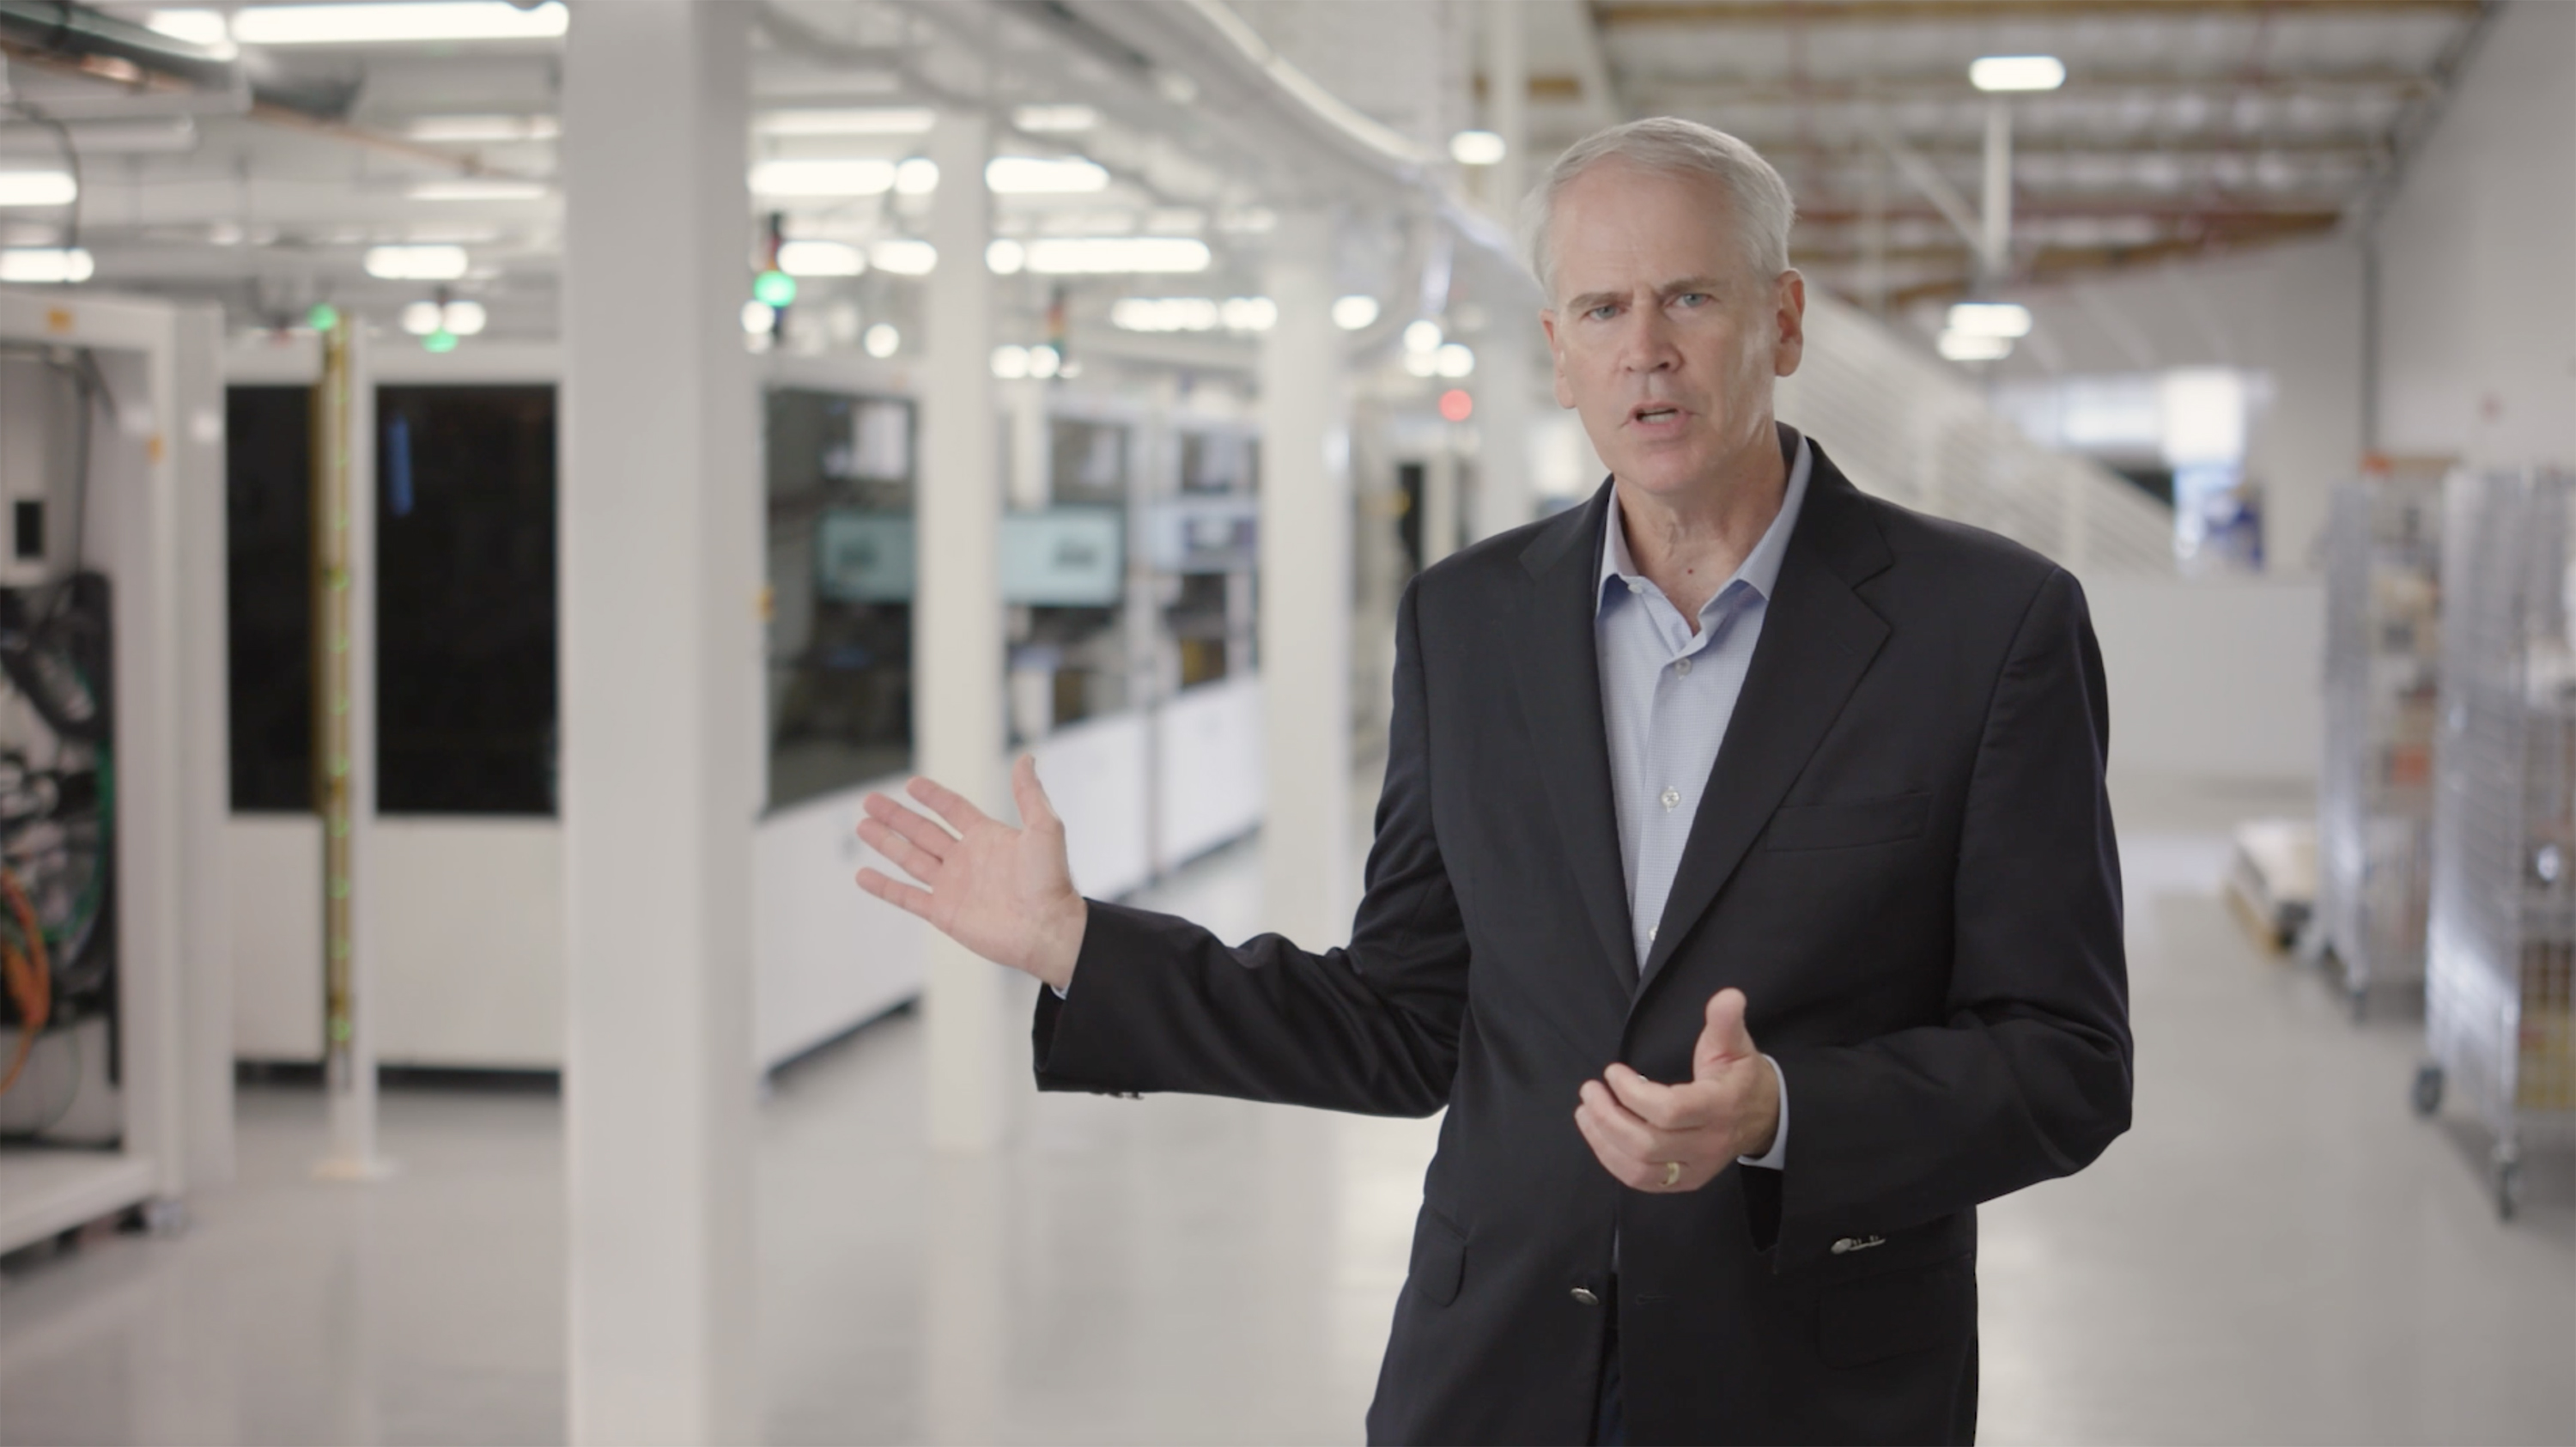 Harrold Rust, President and Chief Executive Officer of Enovix